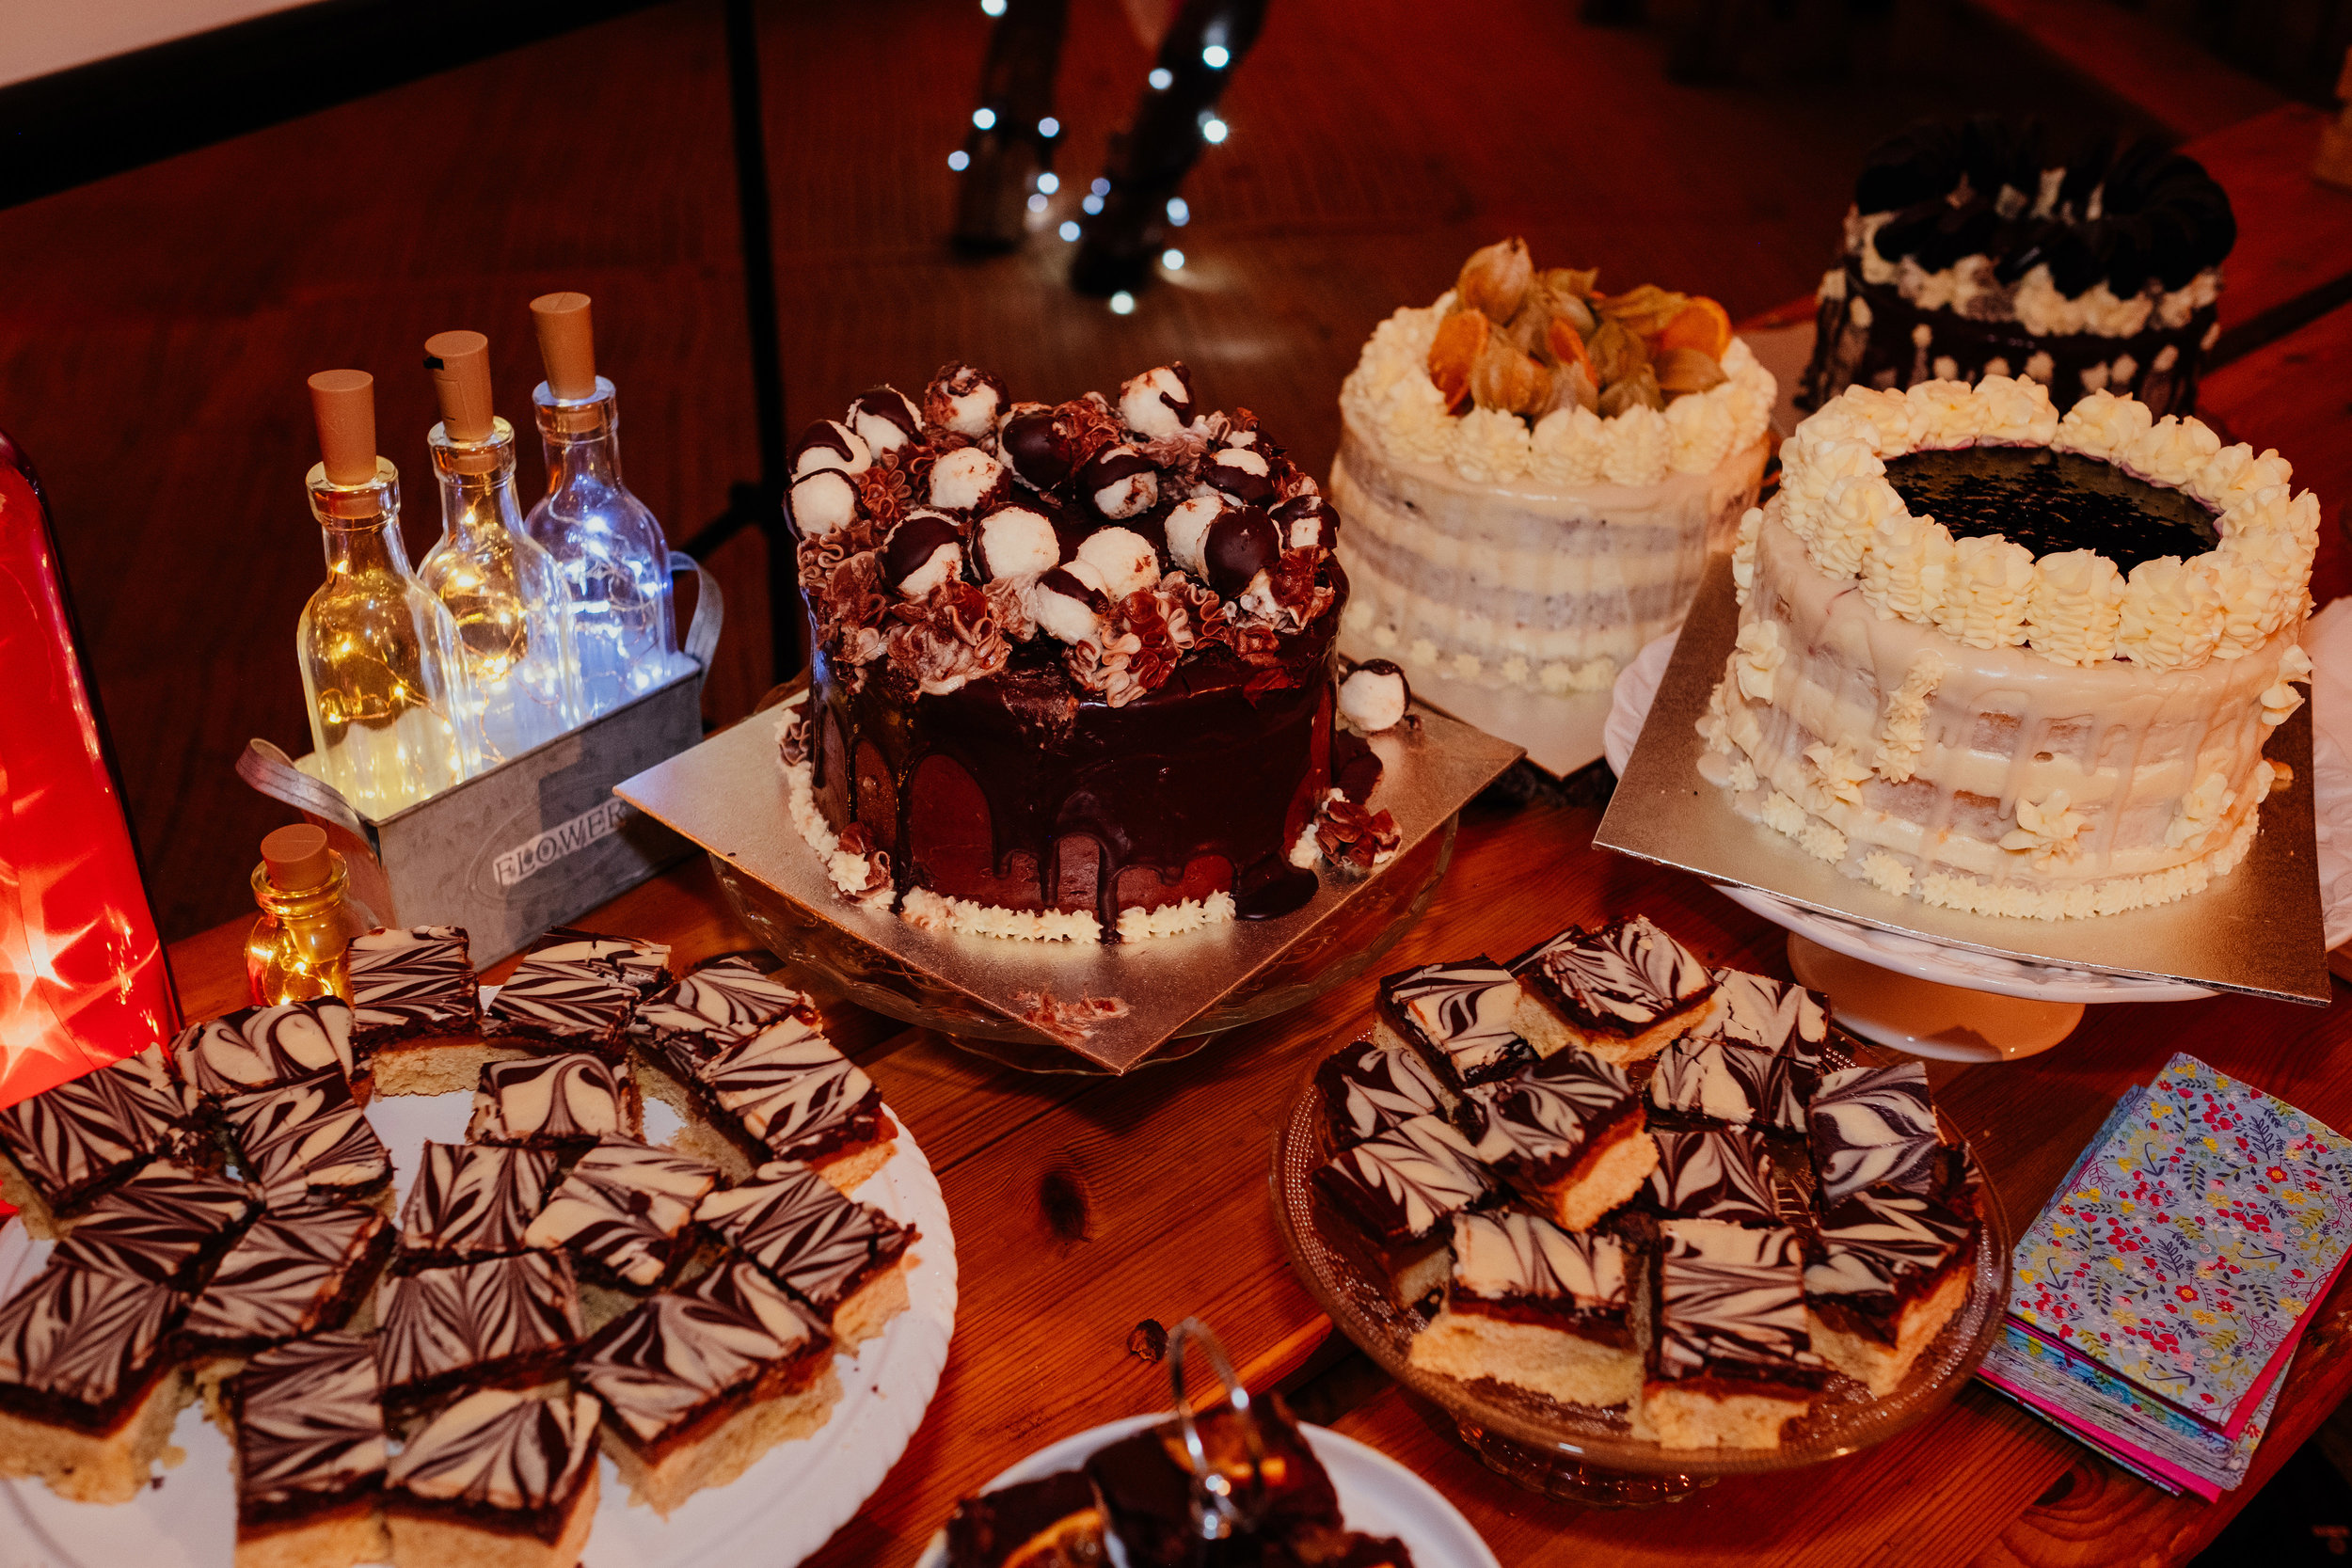 Epic vegan wedding cakes